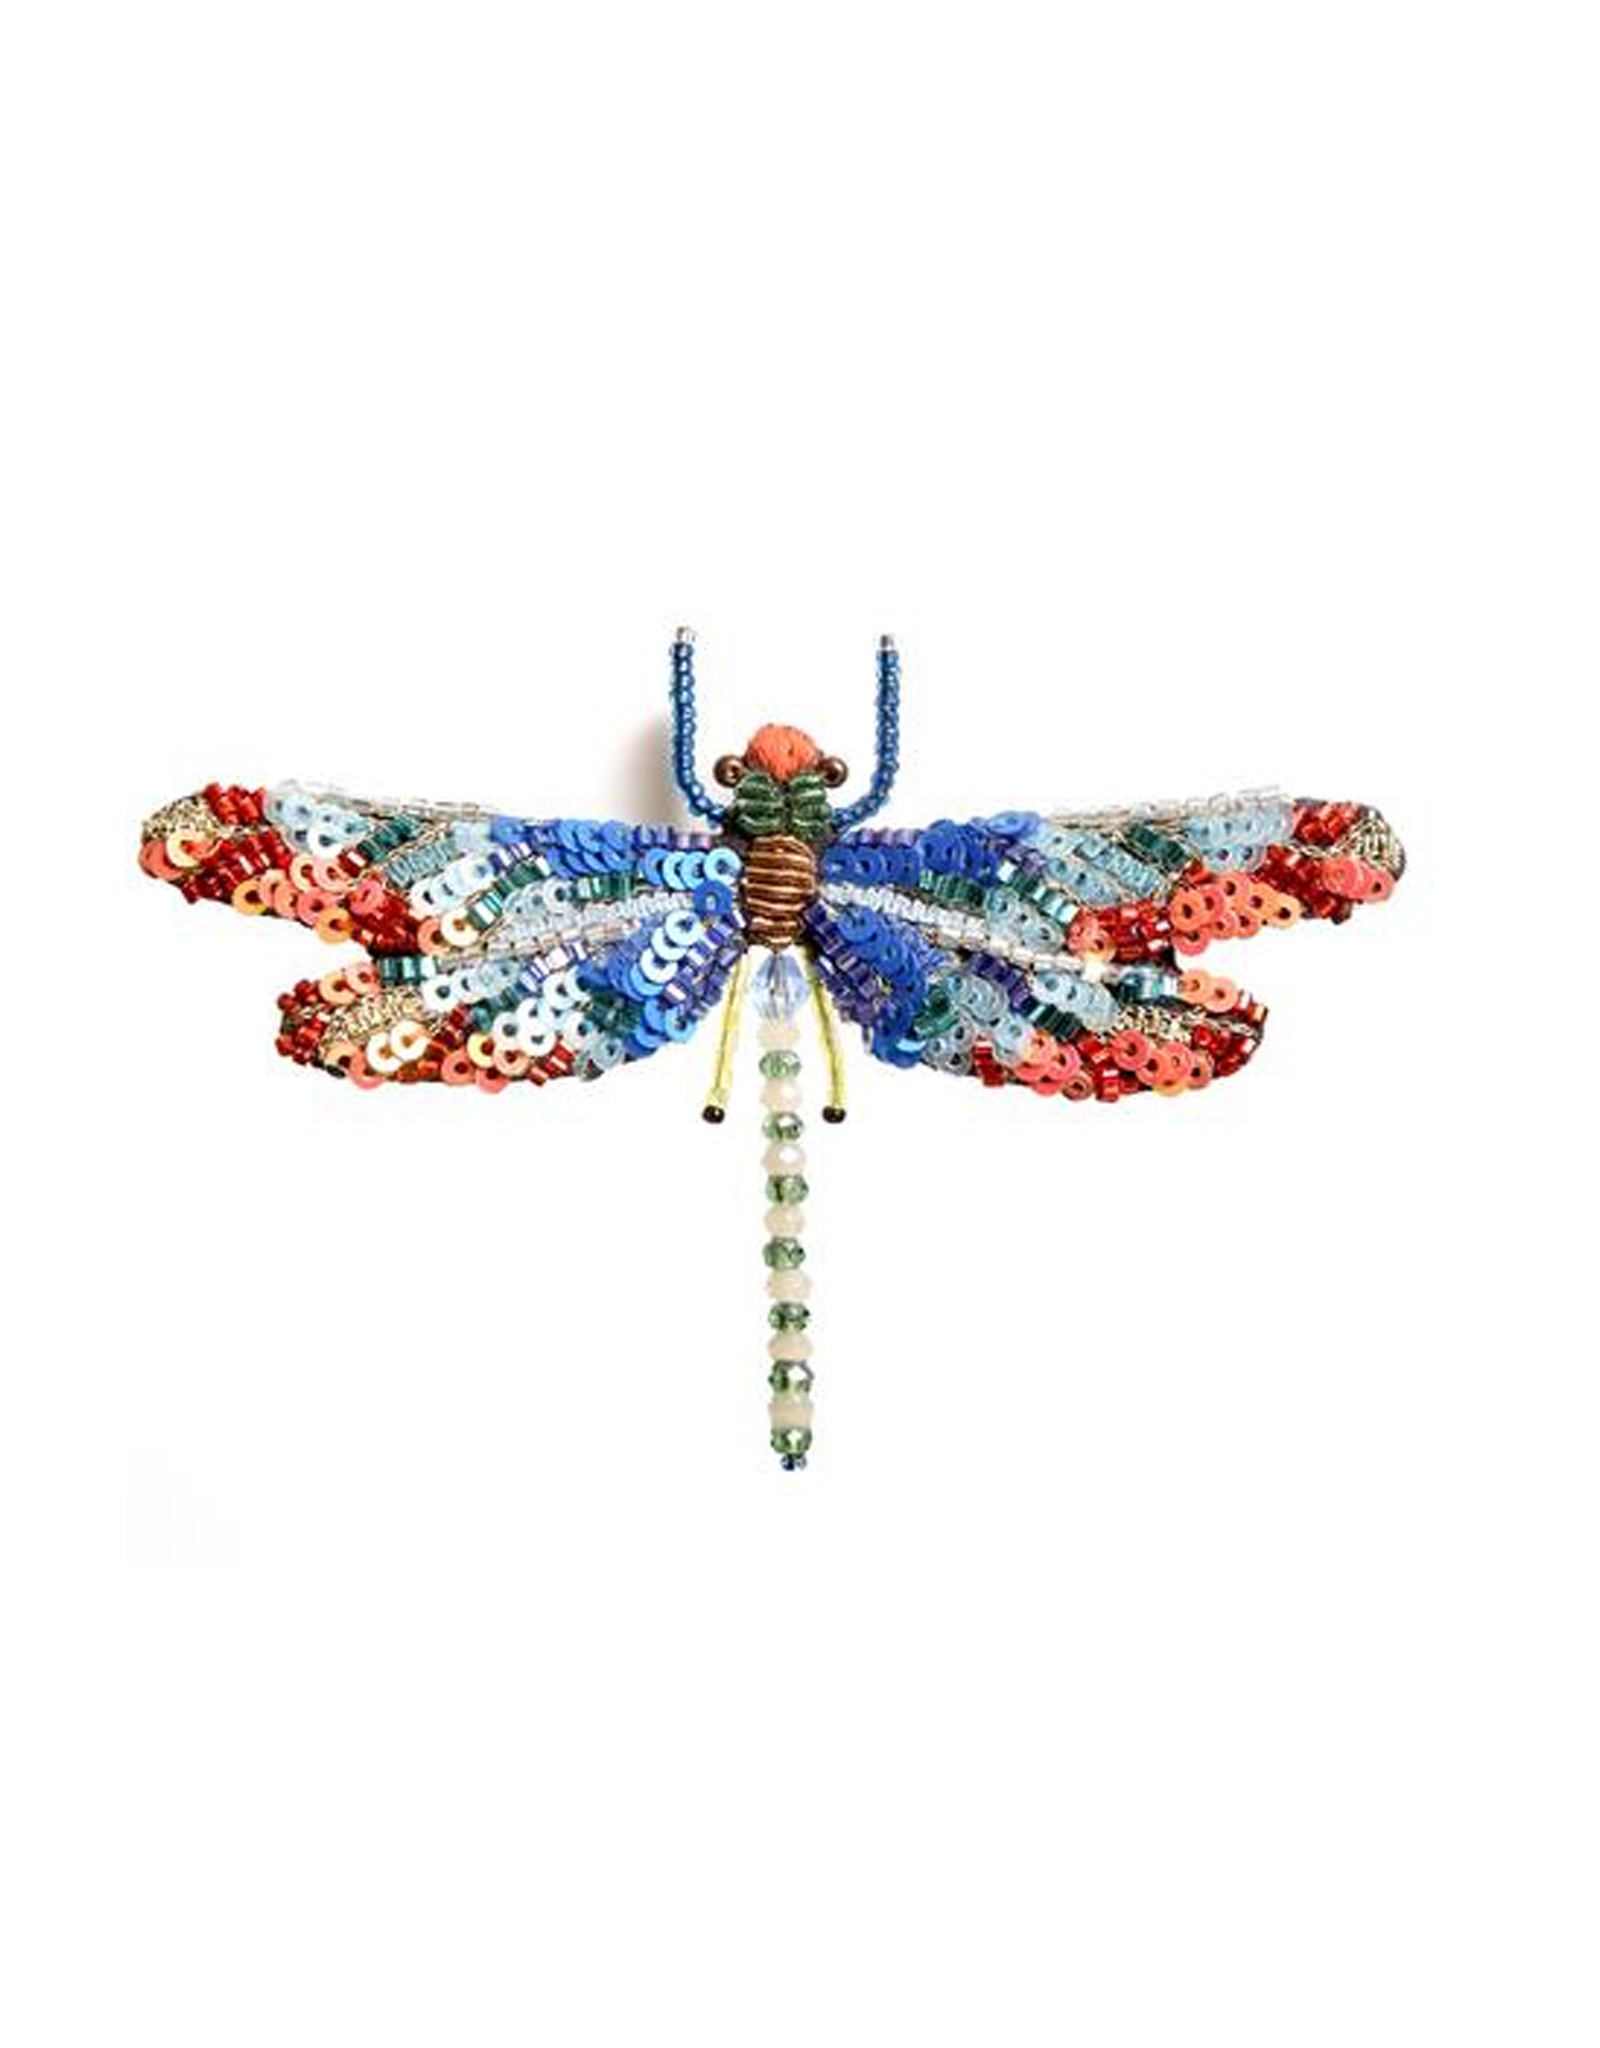 Sunrise Dragonfly Brooch